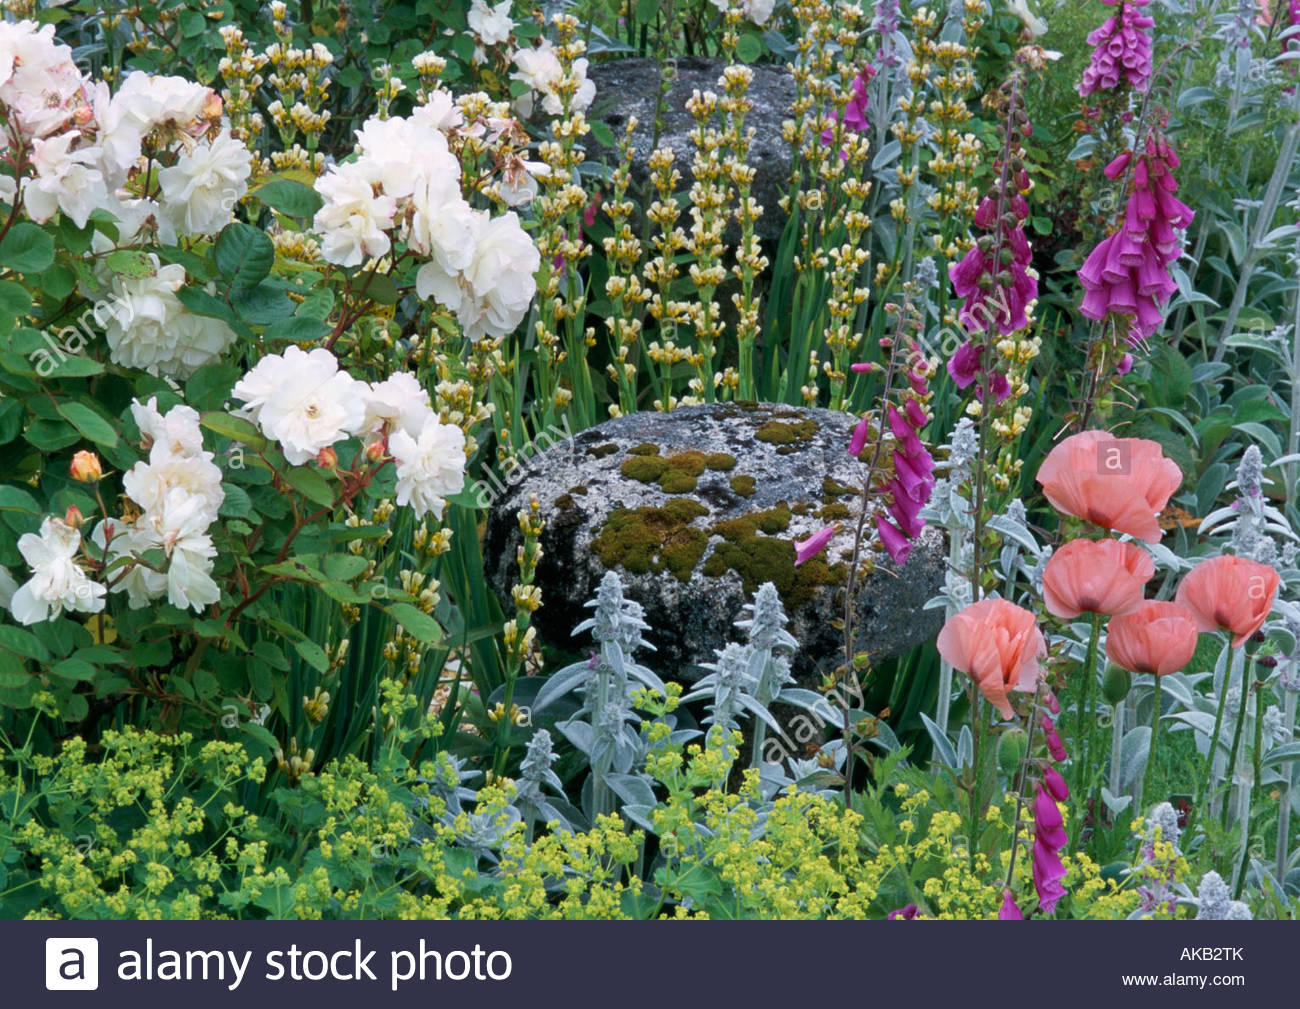 Country cottage gardens - Stock Photo Sussex Country Cottage Garden In Summer Mixed Border With Roses Rosa Penelope Poppies Sysirinchium Striatum